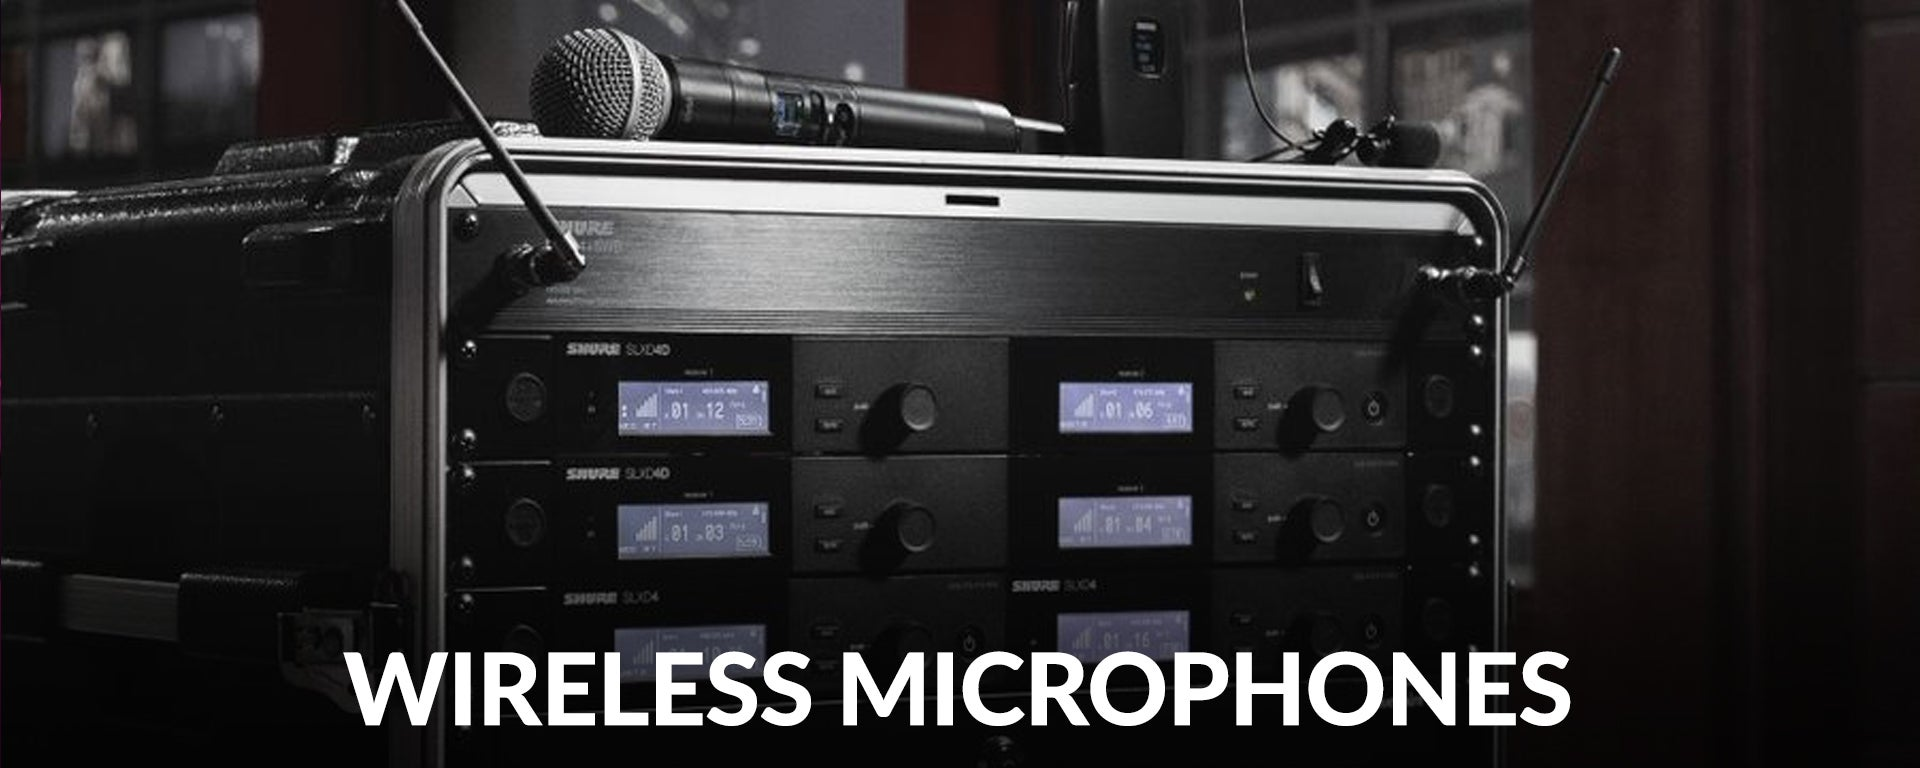 Shop the best selection of Wireless Microphone Systems at SamAsh.com and get the lowest price and fast, free shipping.